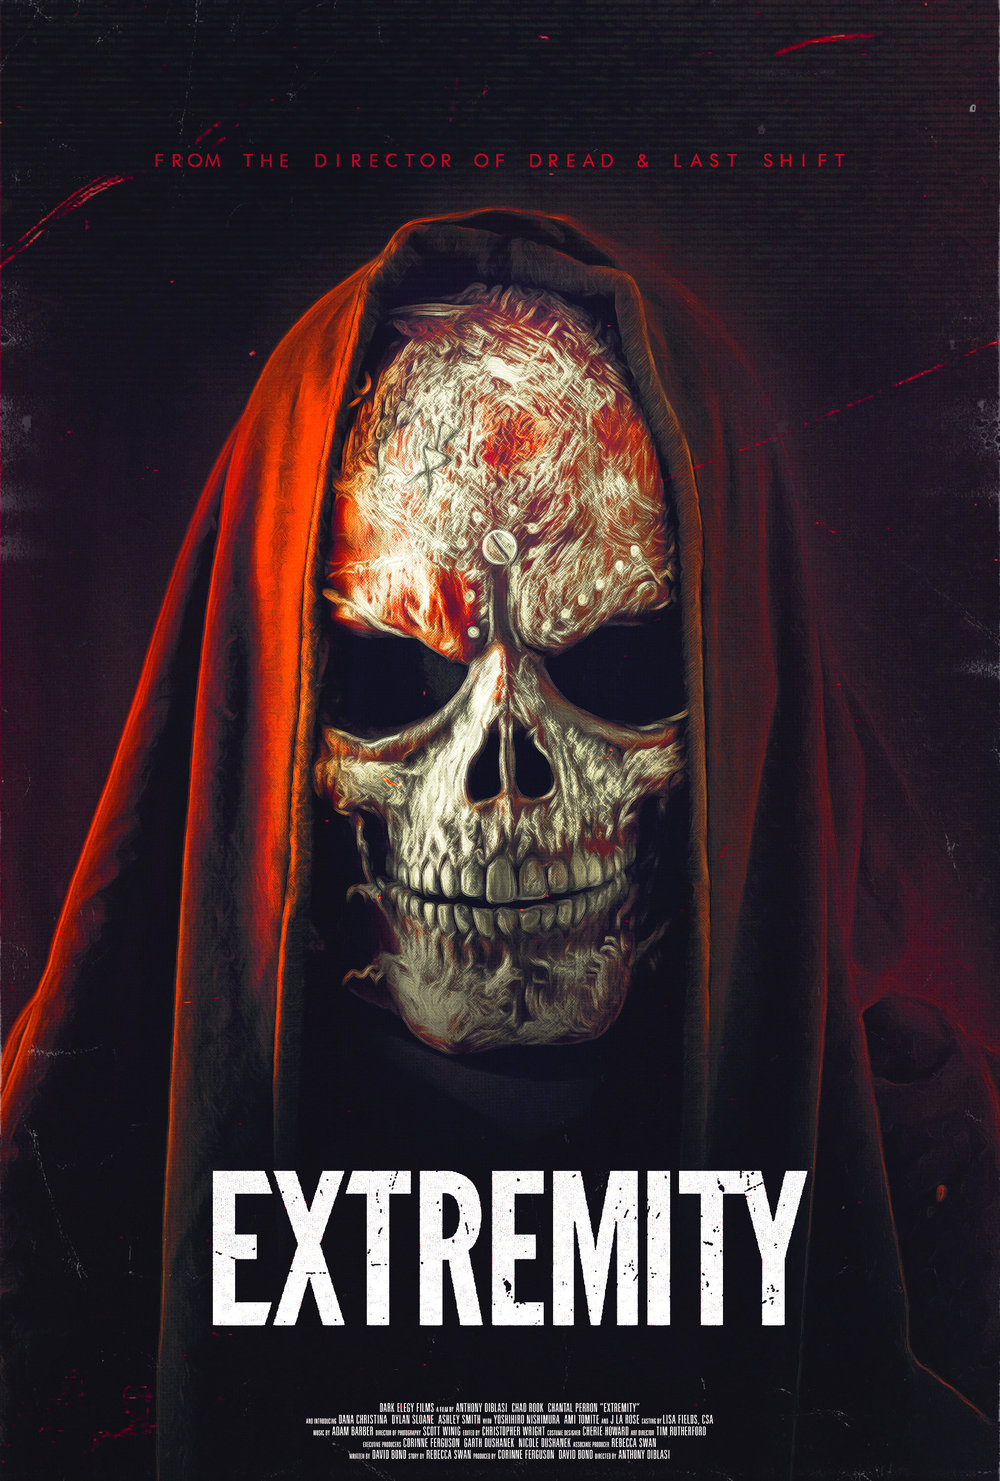 - A young woman obsessed with horror subjects herself to hours of grueling torment inside an extreme haunt in an attempt to confront her fears and conquer the tragic past that haunts her.EXTREMITY, directed by Anthony DiBlasi (Last Shift, The Midnight Meat Train), will release on October 2nd with a limited theatrical just in time for the Halloween season. Get ready for a thriller that will have you on the edge of your seat and out of your mind.